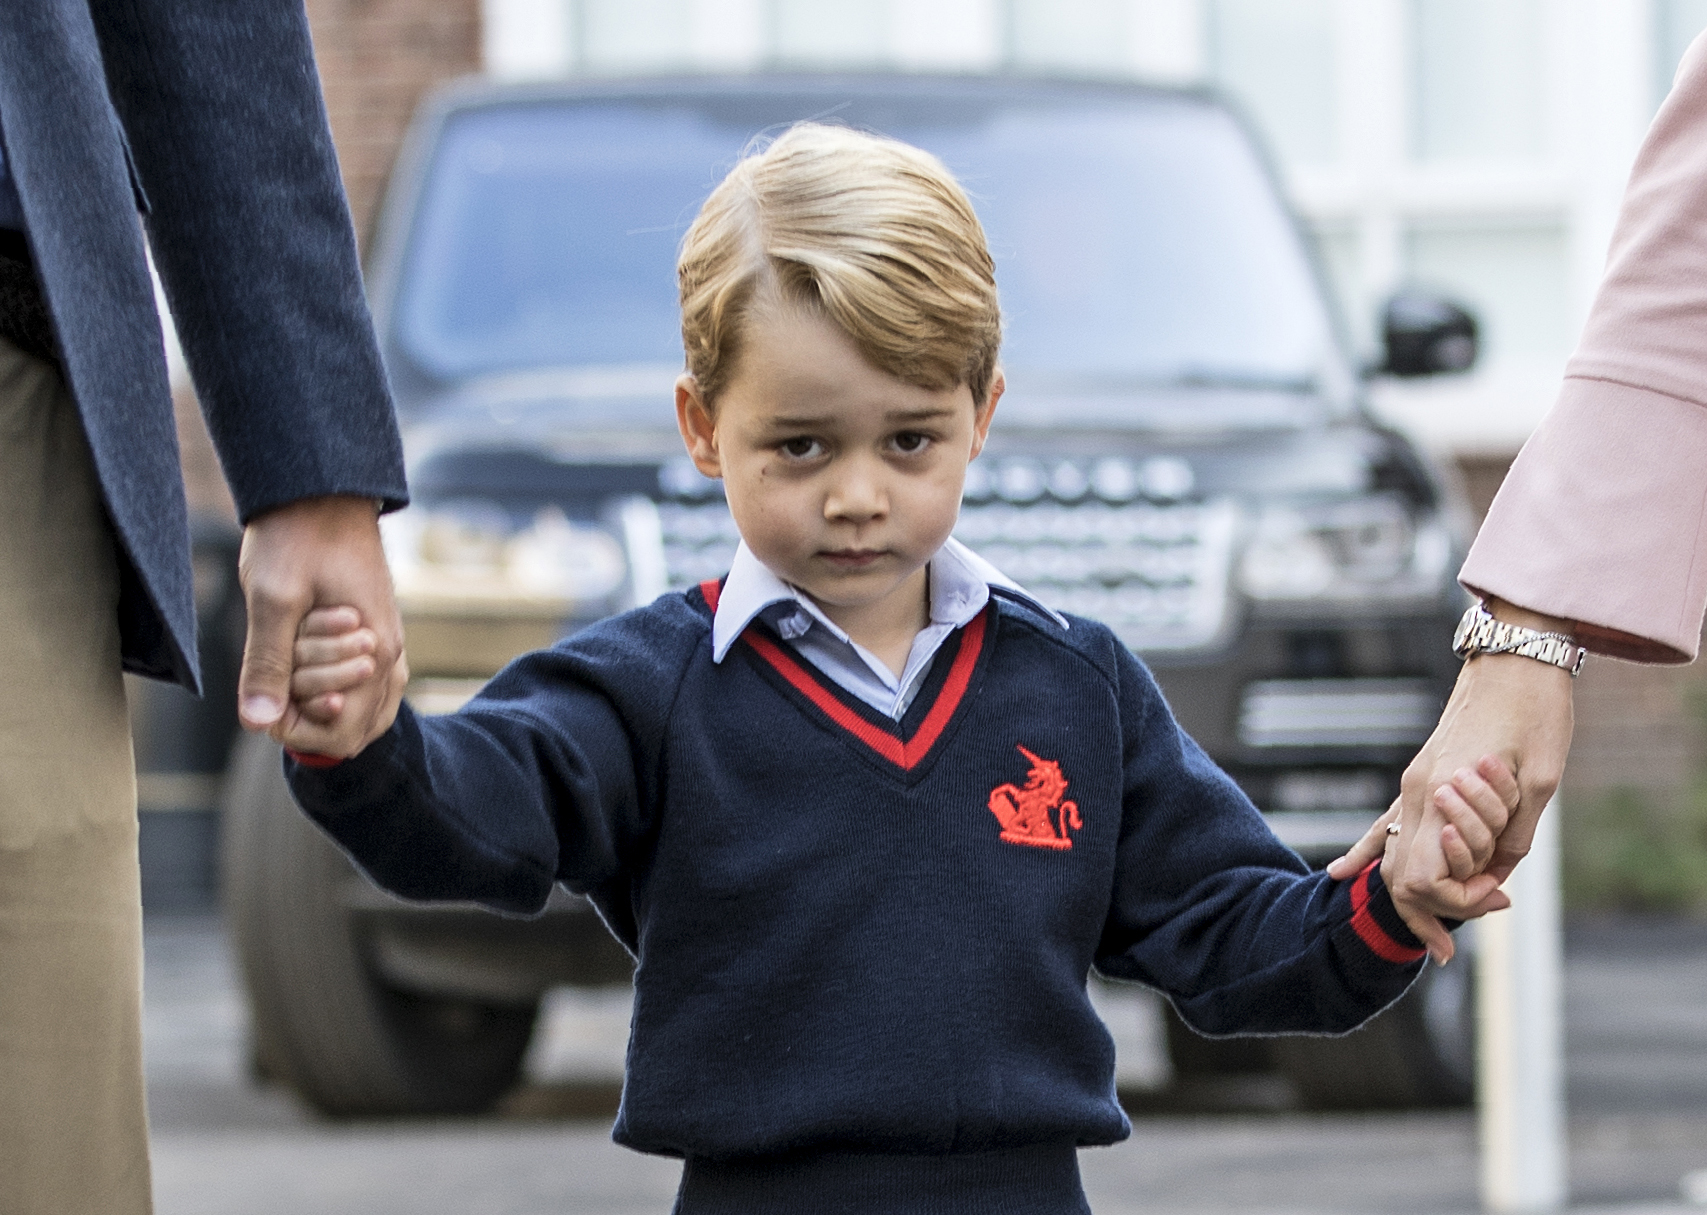 SEPT. 7 - Britain's Prince George (C) accompanied by Britain's Prince William (L), Duke of Cambridge arrives for his first day of school